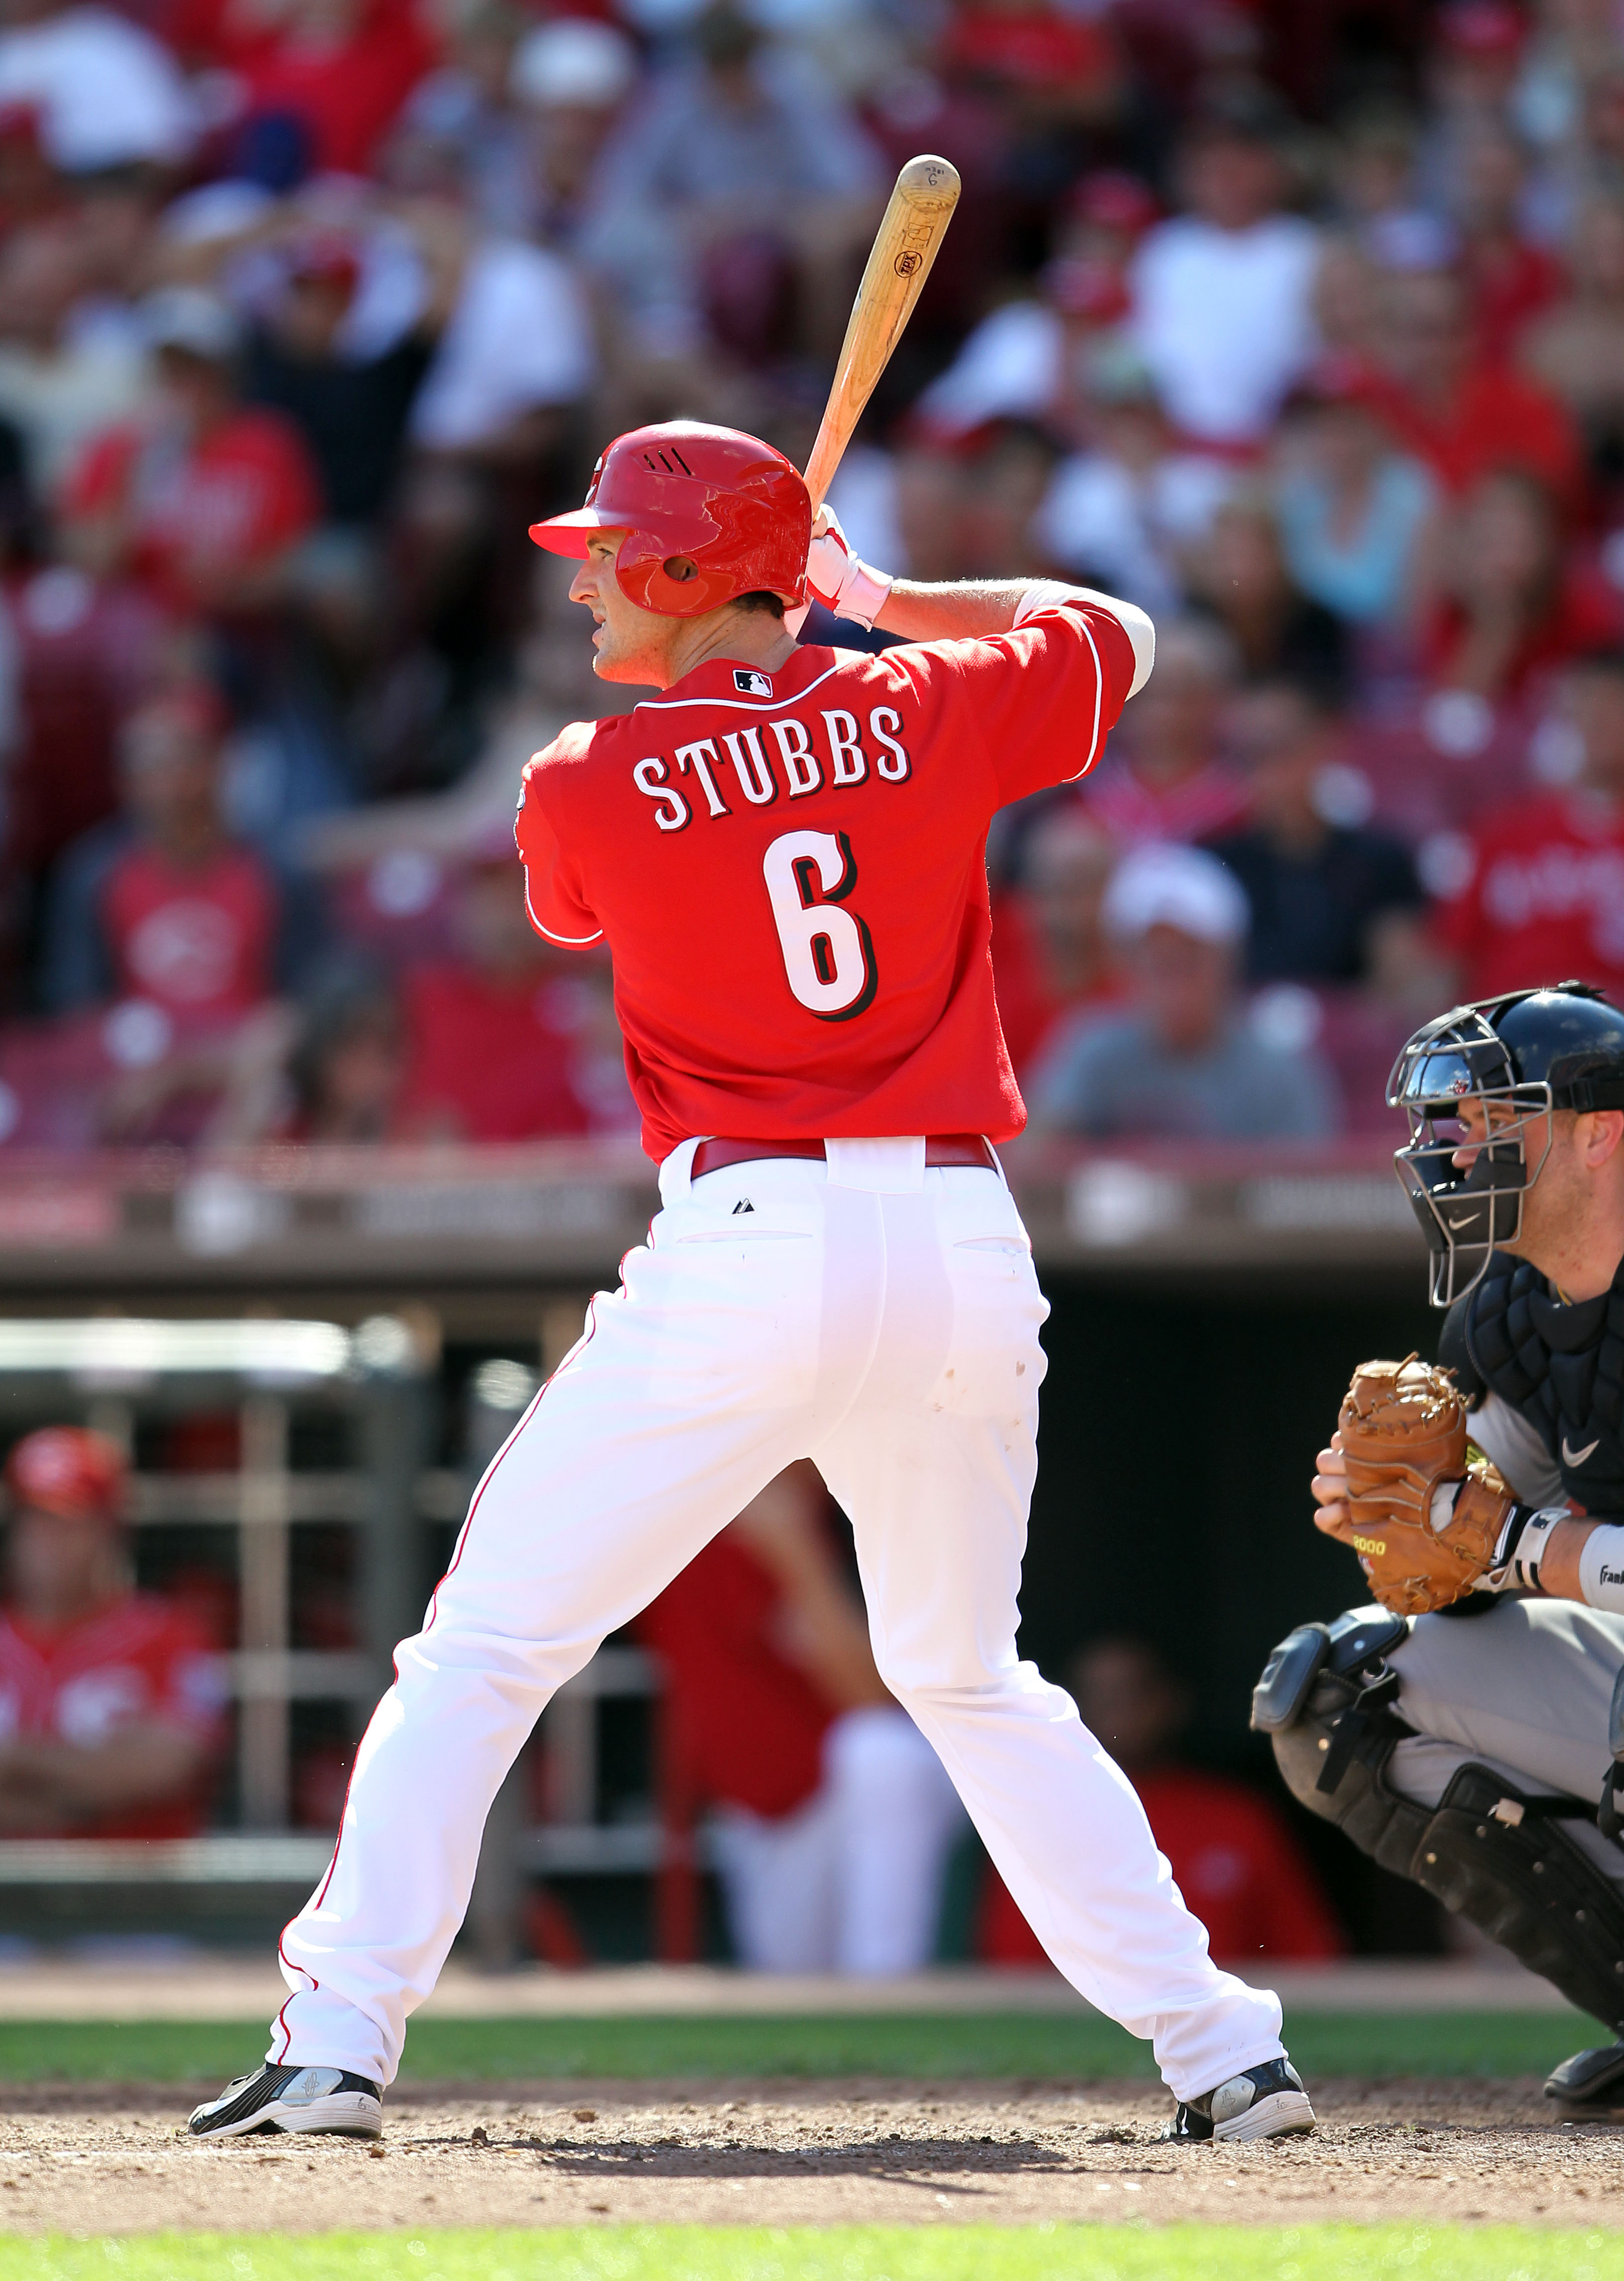 CINCINNATI - SEPTEMBER 12:  Drew Stubbs #6 of  the Cincinnati Reds is at bat during the game against the Pittsburgh Pirates at Great American Ballpark on September 12, 2010 in Cincinnati, Ohio.  (Photo by Andy Lyons/Getty Images)